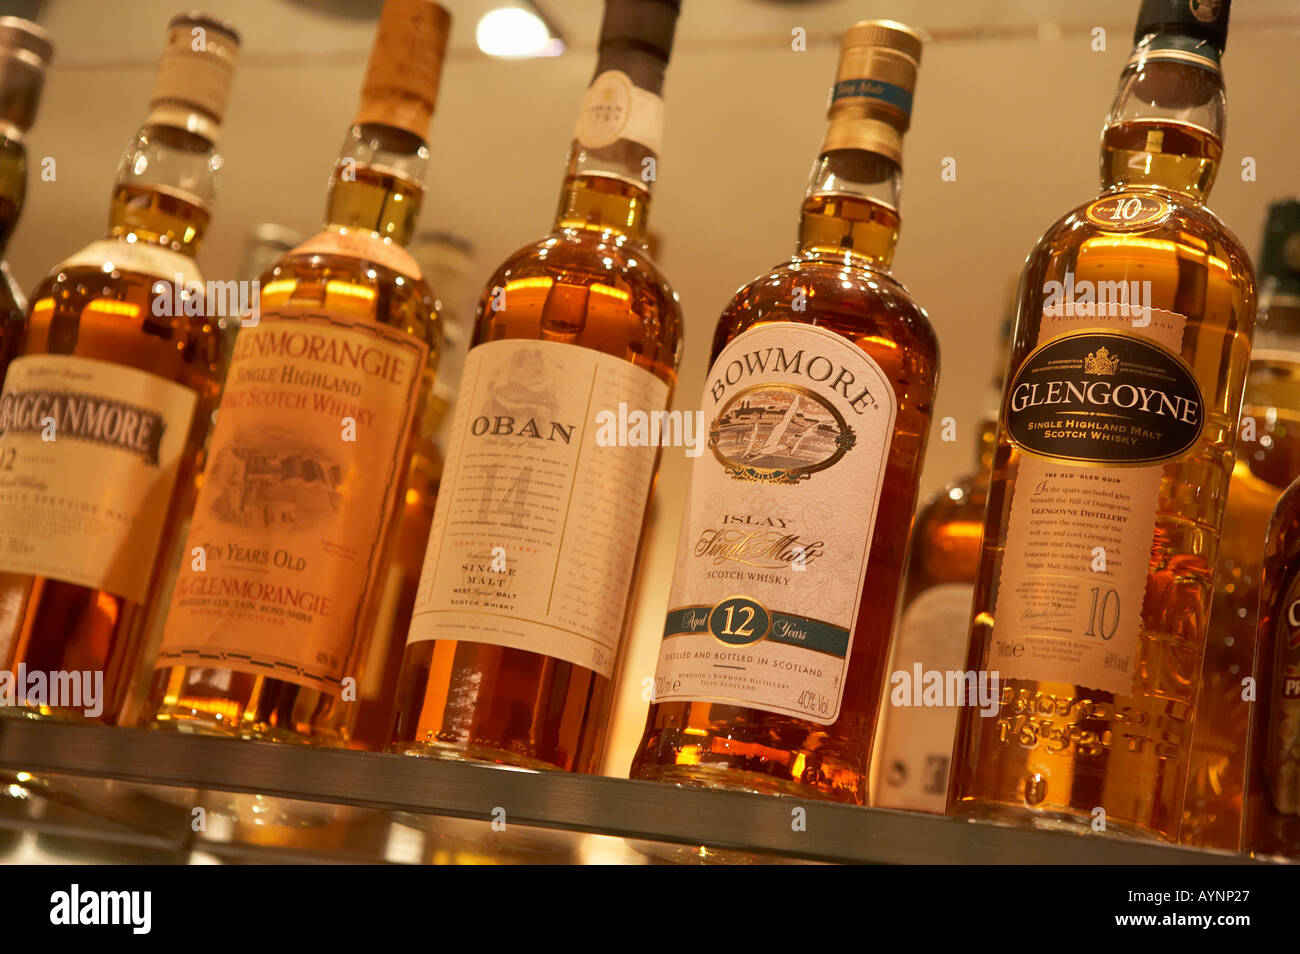 SELECTION OF SCOTCH WHISKY BOTTLES ON GLASS SHELVES IN BAR Stock ...